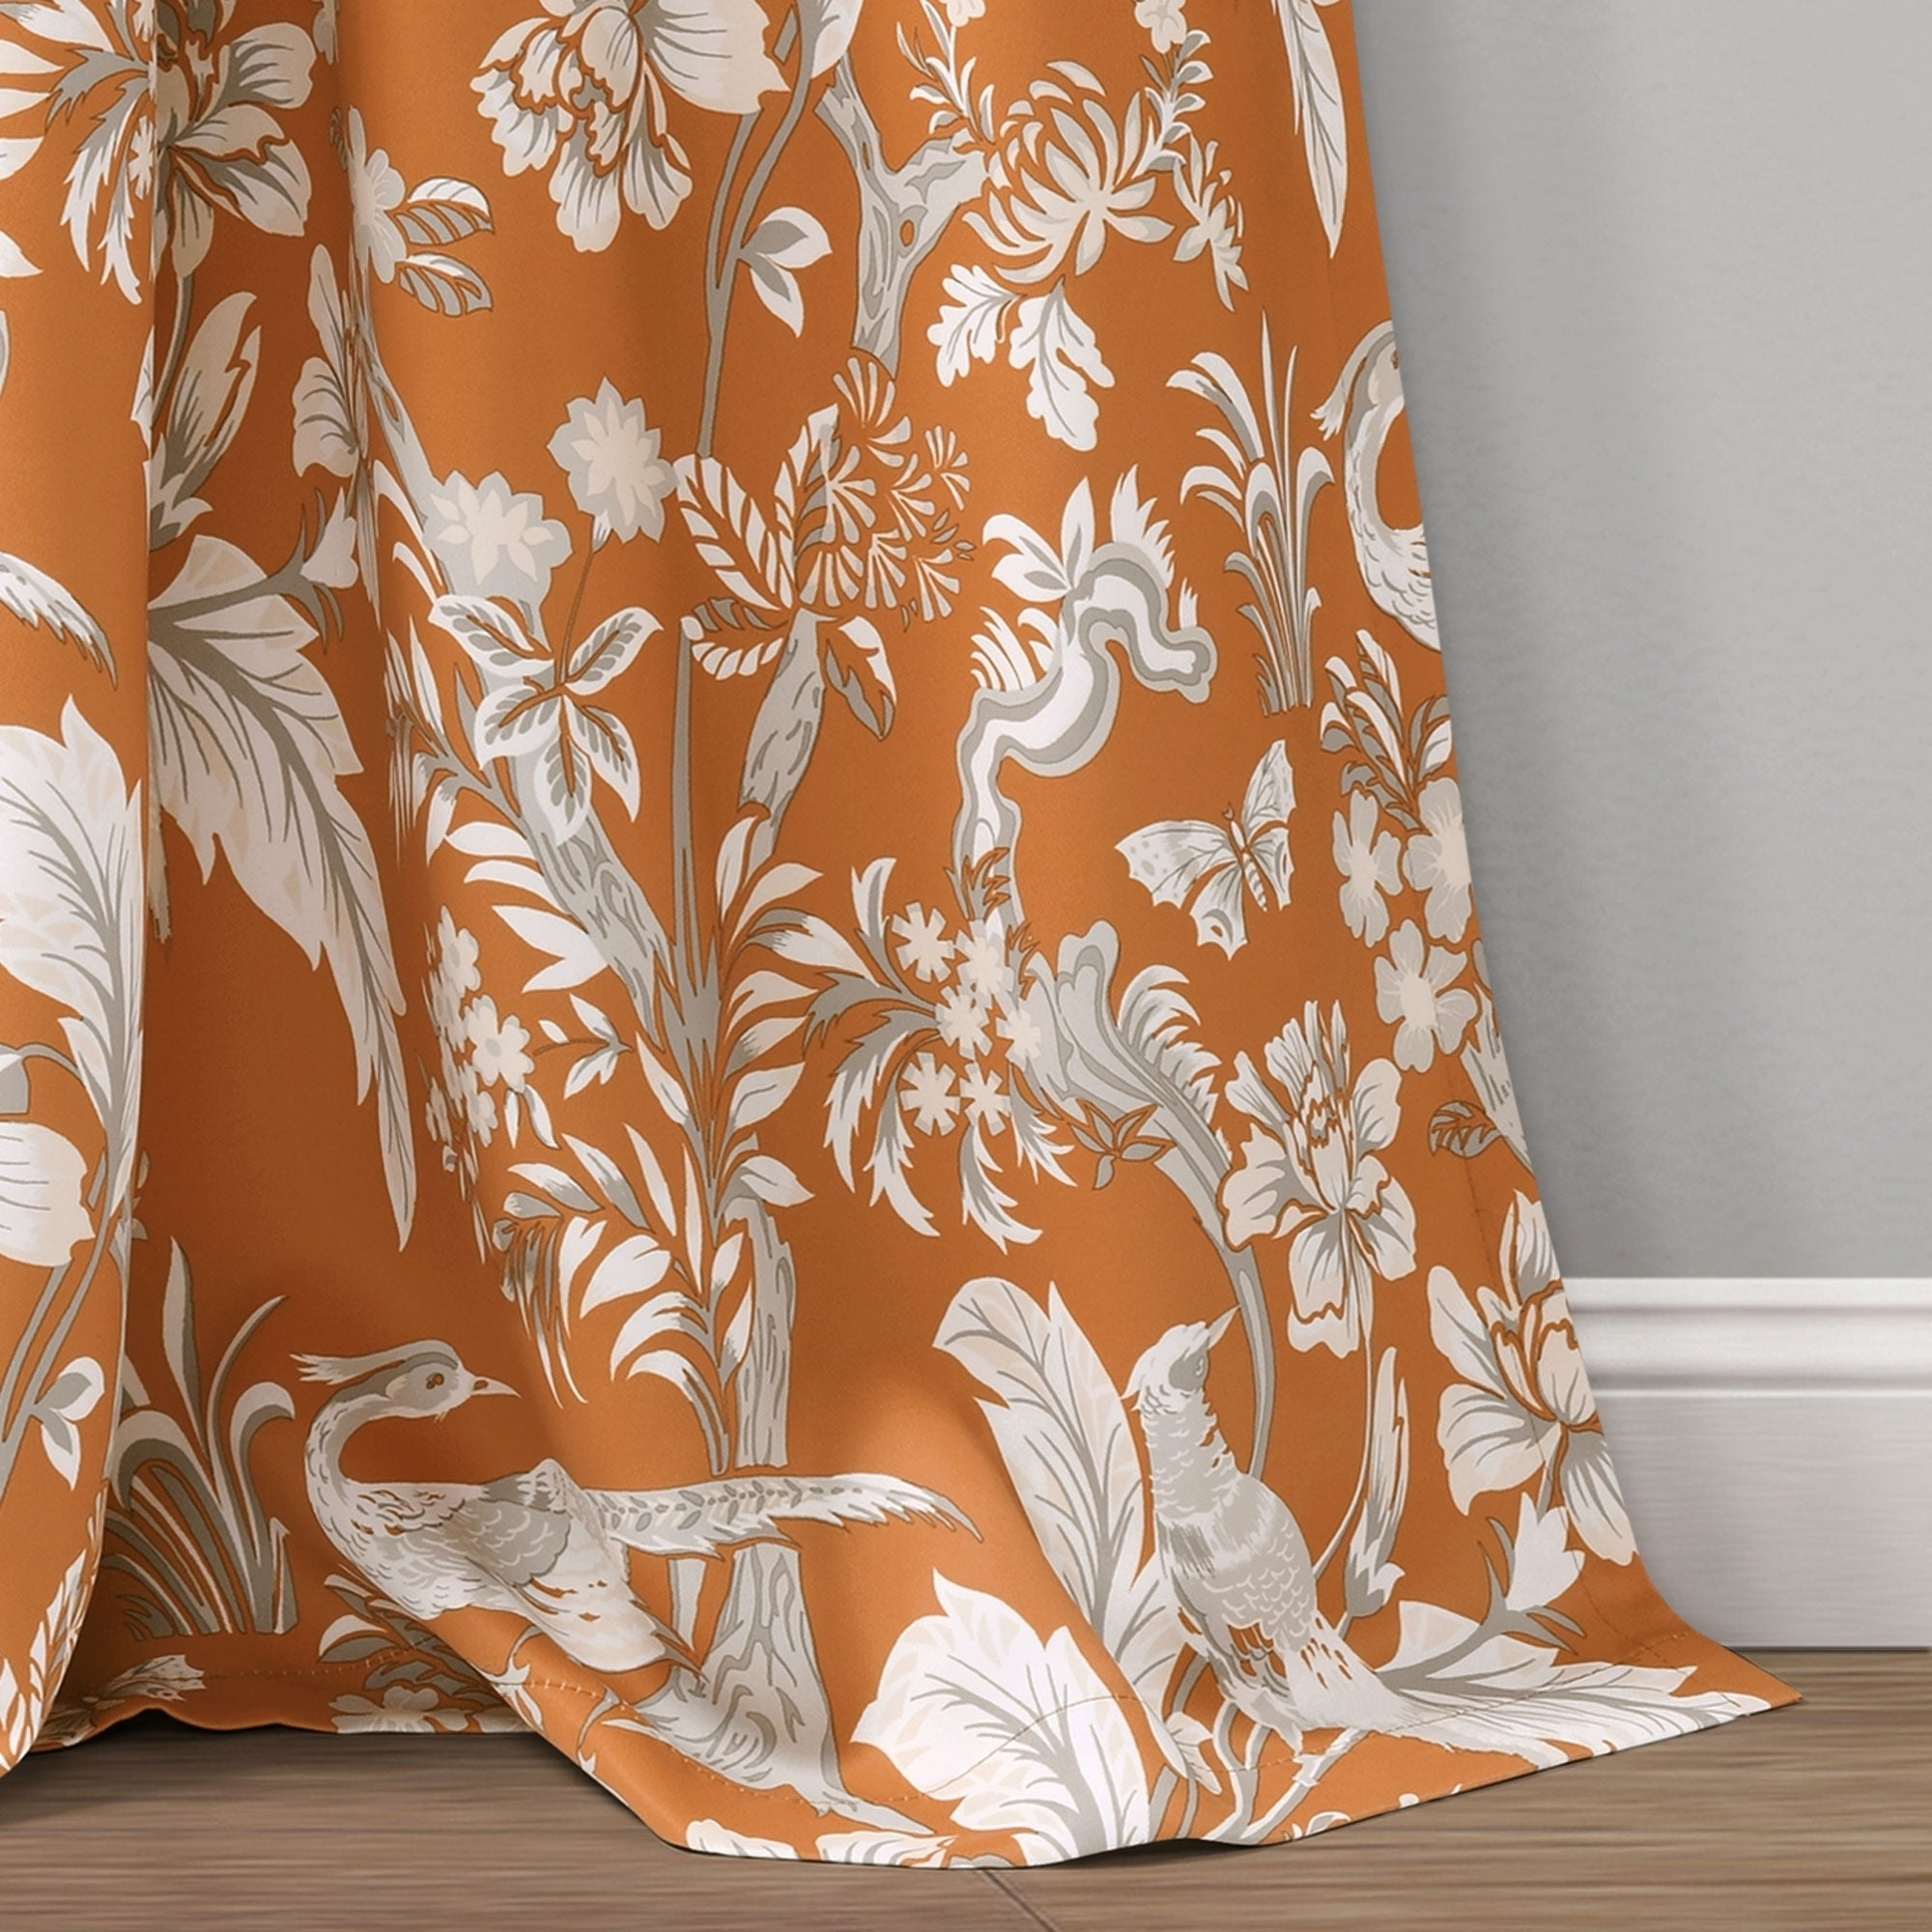 Lush Decor Dolores Room Darkening Floral Curtain Panel Pair Pertaining To Fashionable Dolores Room Darkening Floral Curtain Panel Pairs (Gallery 10 of 20)